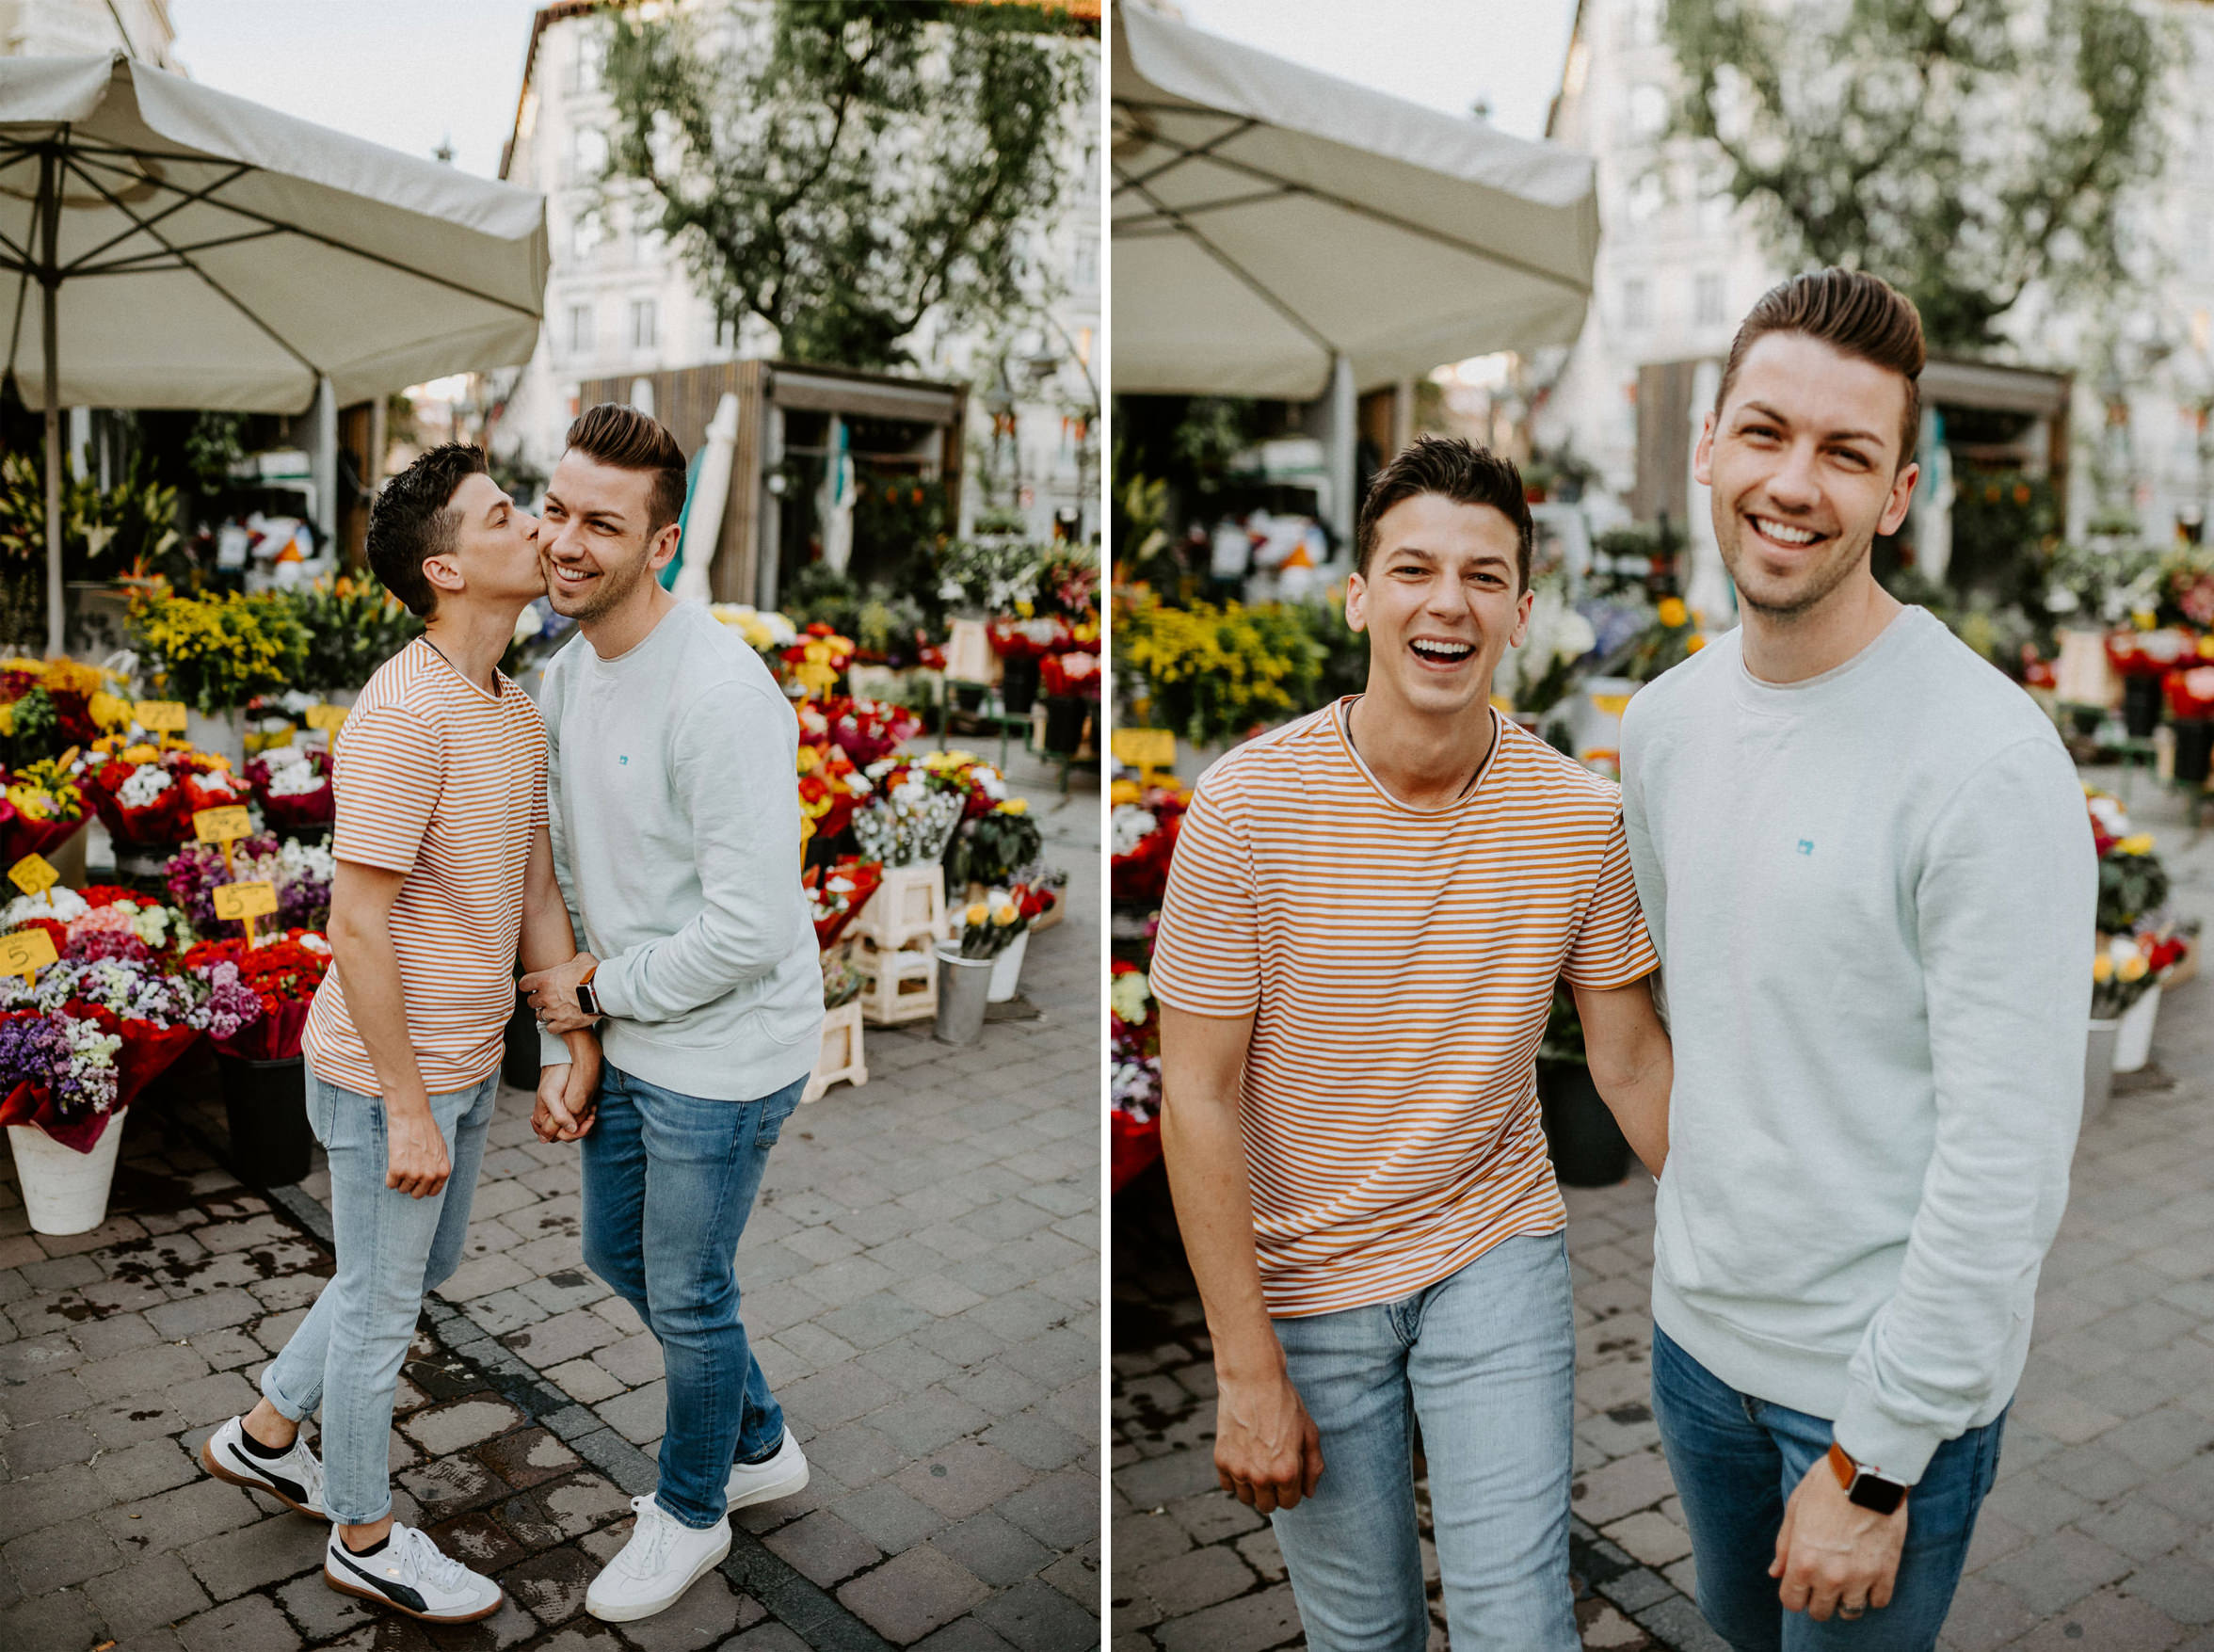 gay Madrid couple kissing old town flowers